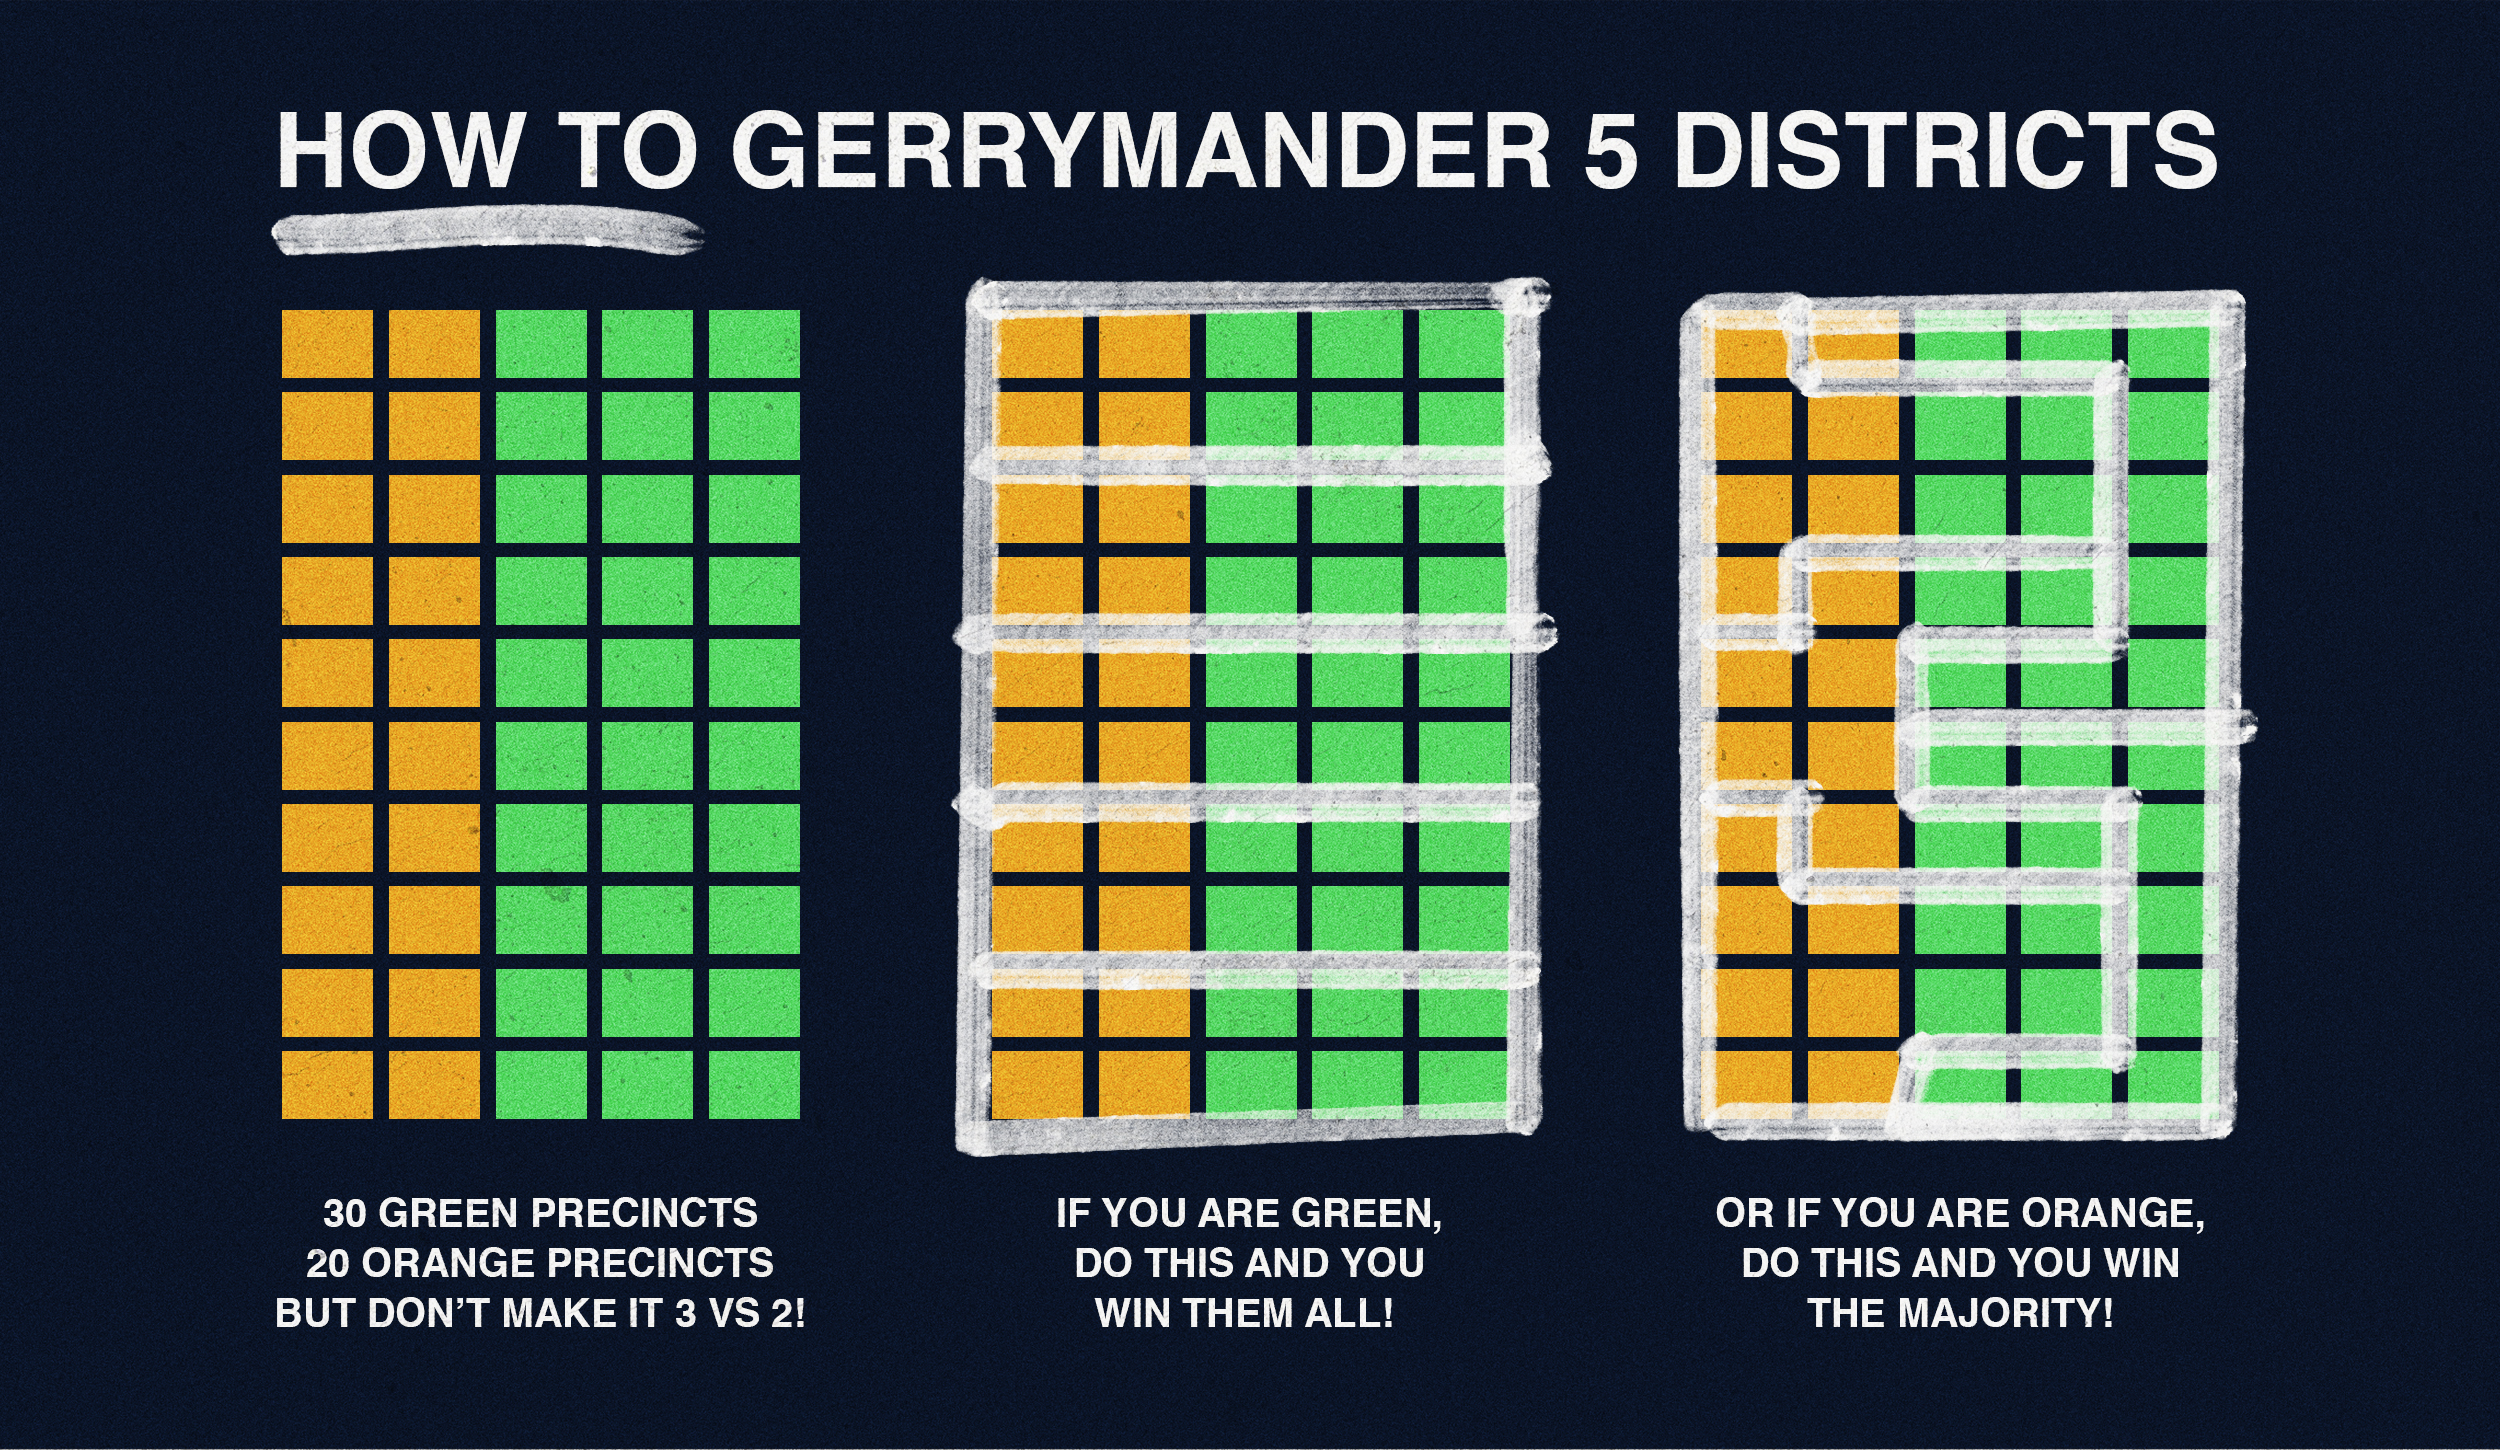 A little on gerrymandering which is totally legal: